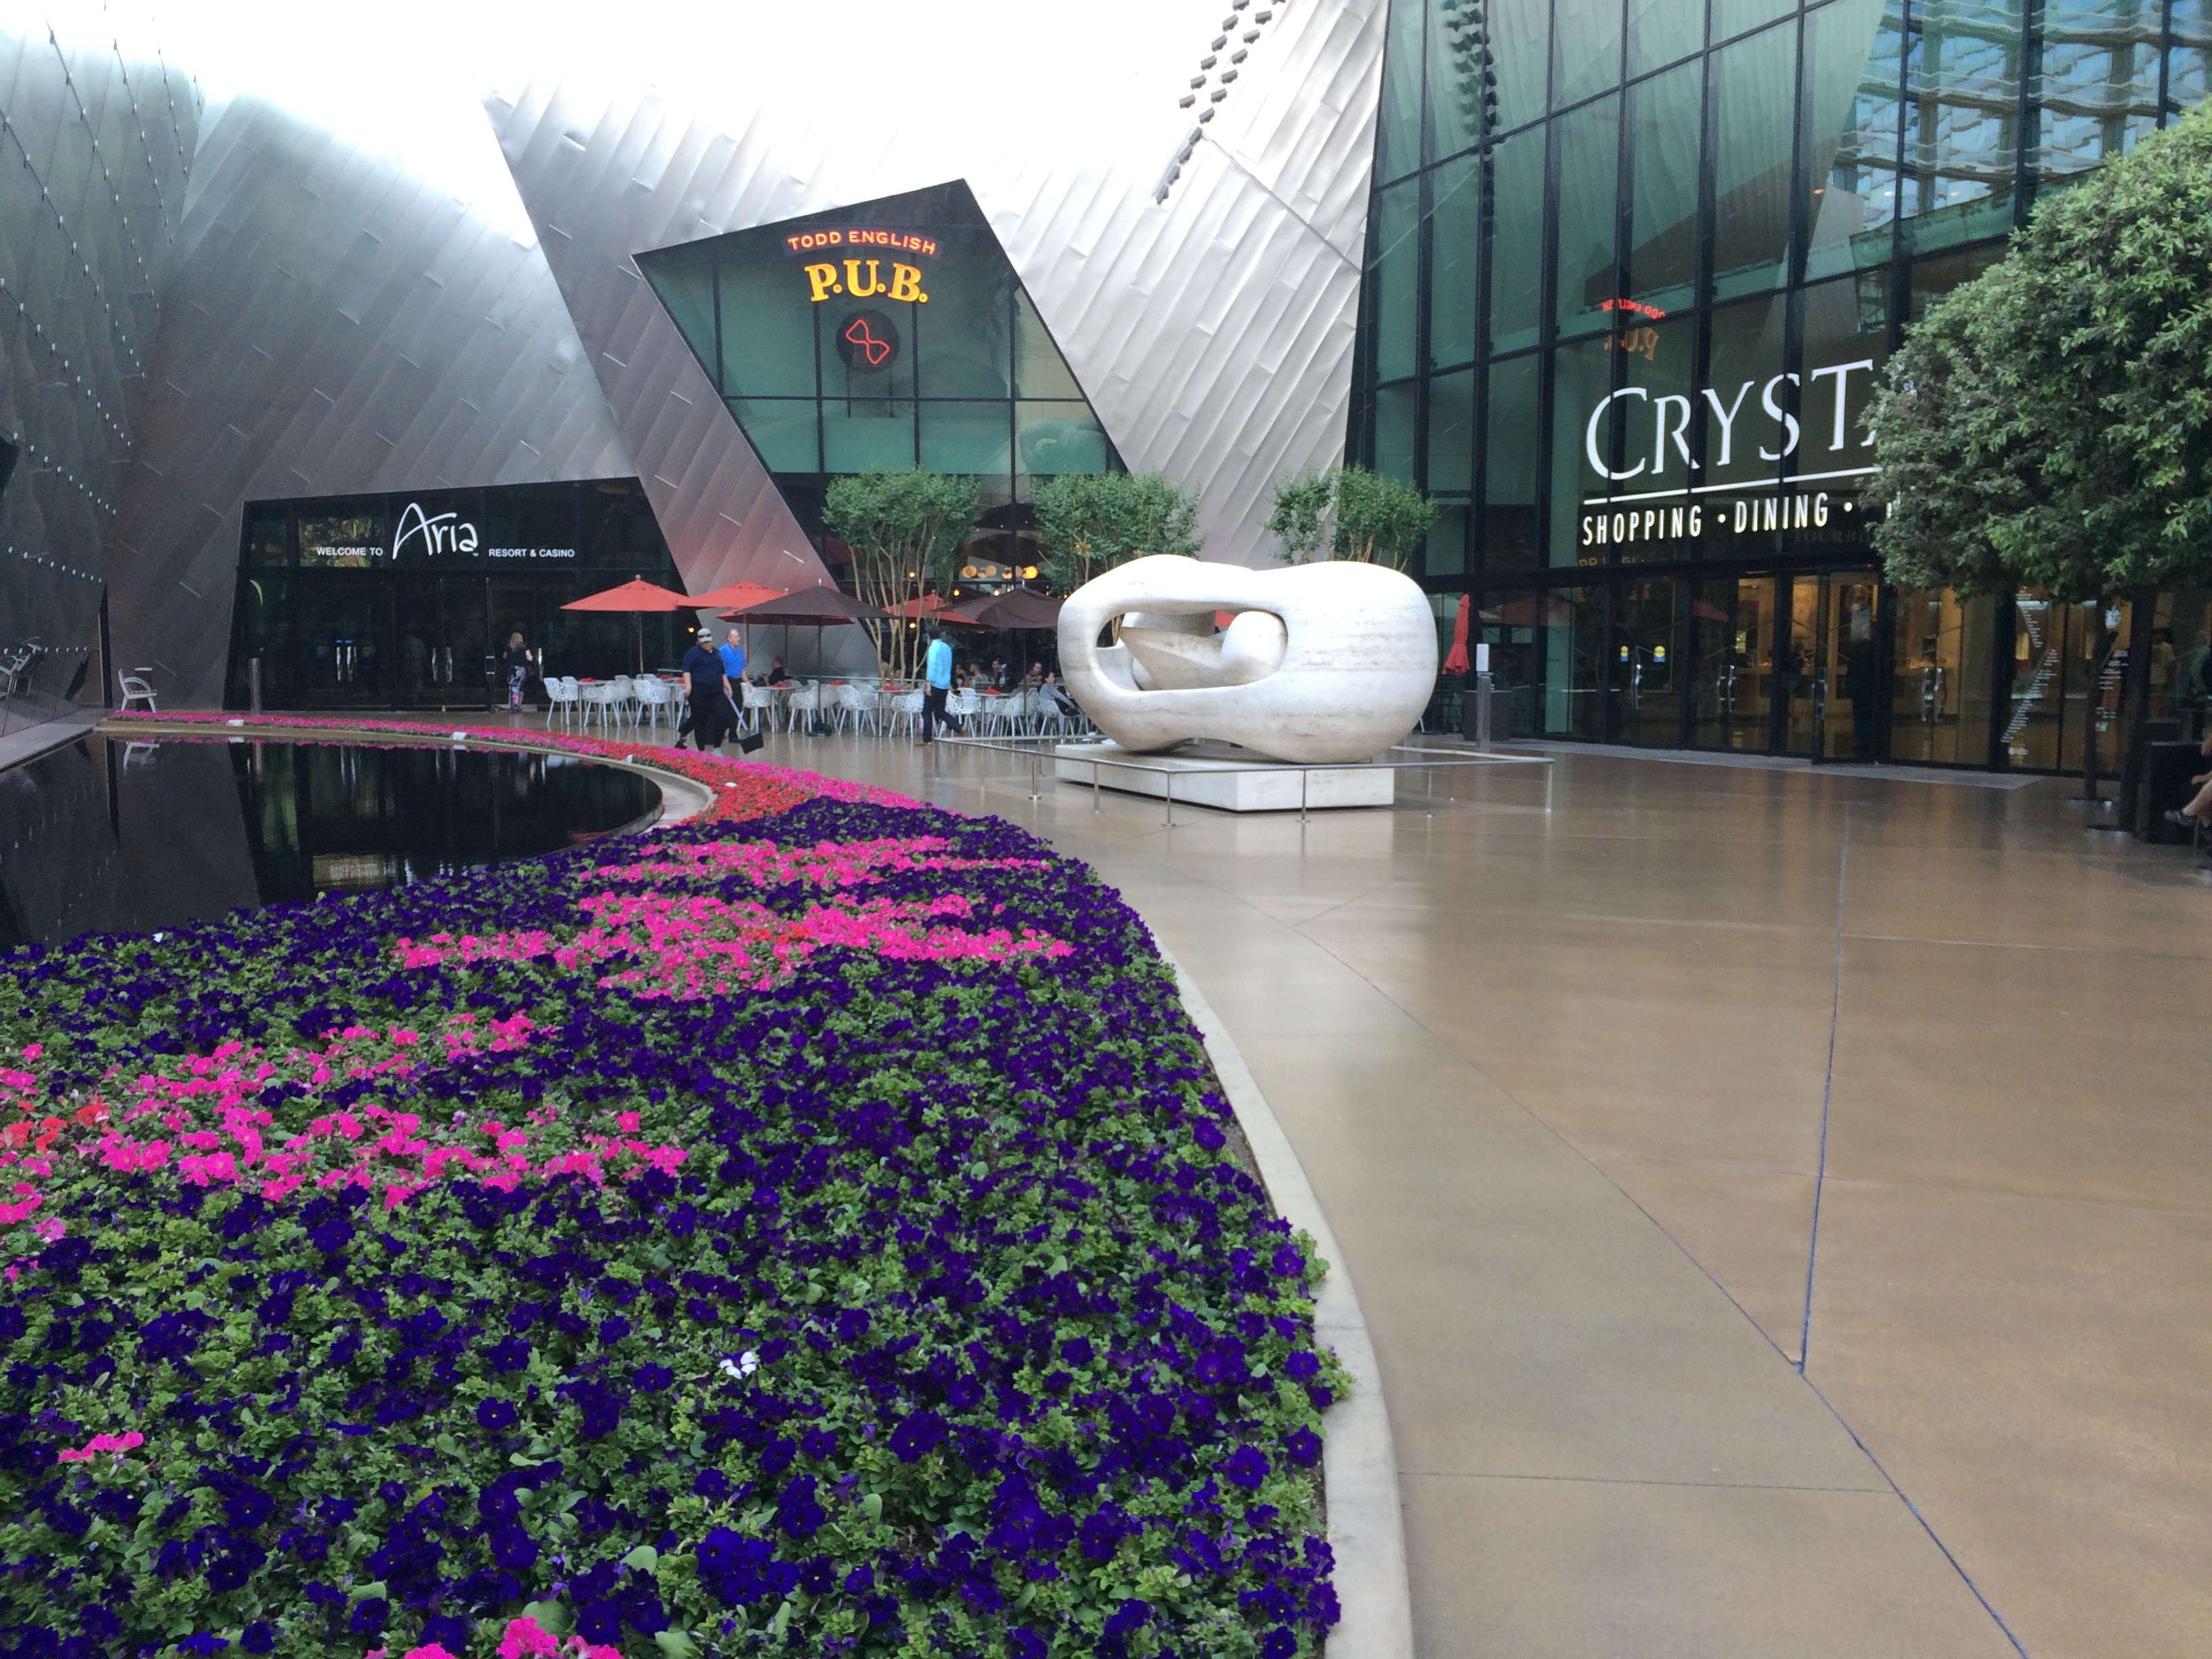 """British artist Henry Moore, who died in 1986, is said to be the most celebrated sculptor of his time. The title of this sculpture, """"Reclining Connected Forms,"""" pretty much illustrates the dominant themes of his works. This piece sits in the courtyard between Aria Resort & Casino and The Shops at Crystals. Though Moore's work made him wealthy, he lived frugally and gave most of his money to a foundation that promotes education and the arts. Photo by E'louise Ondash"""